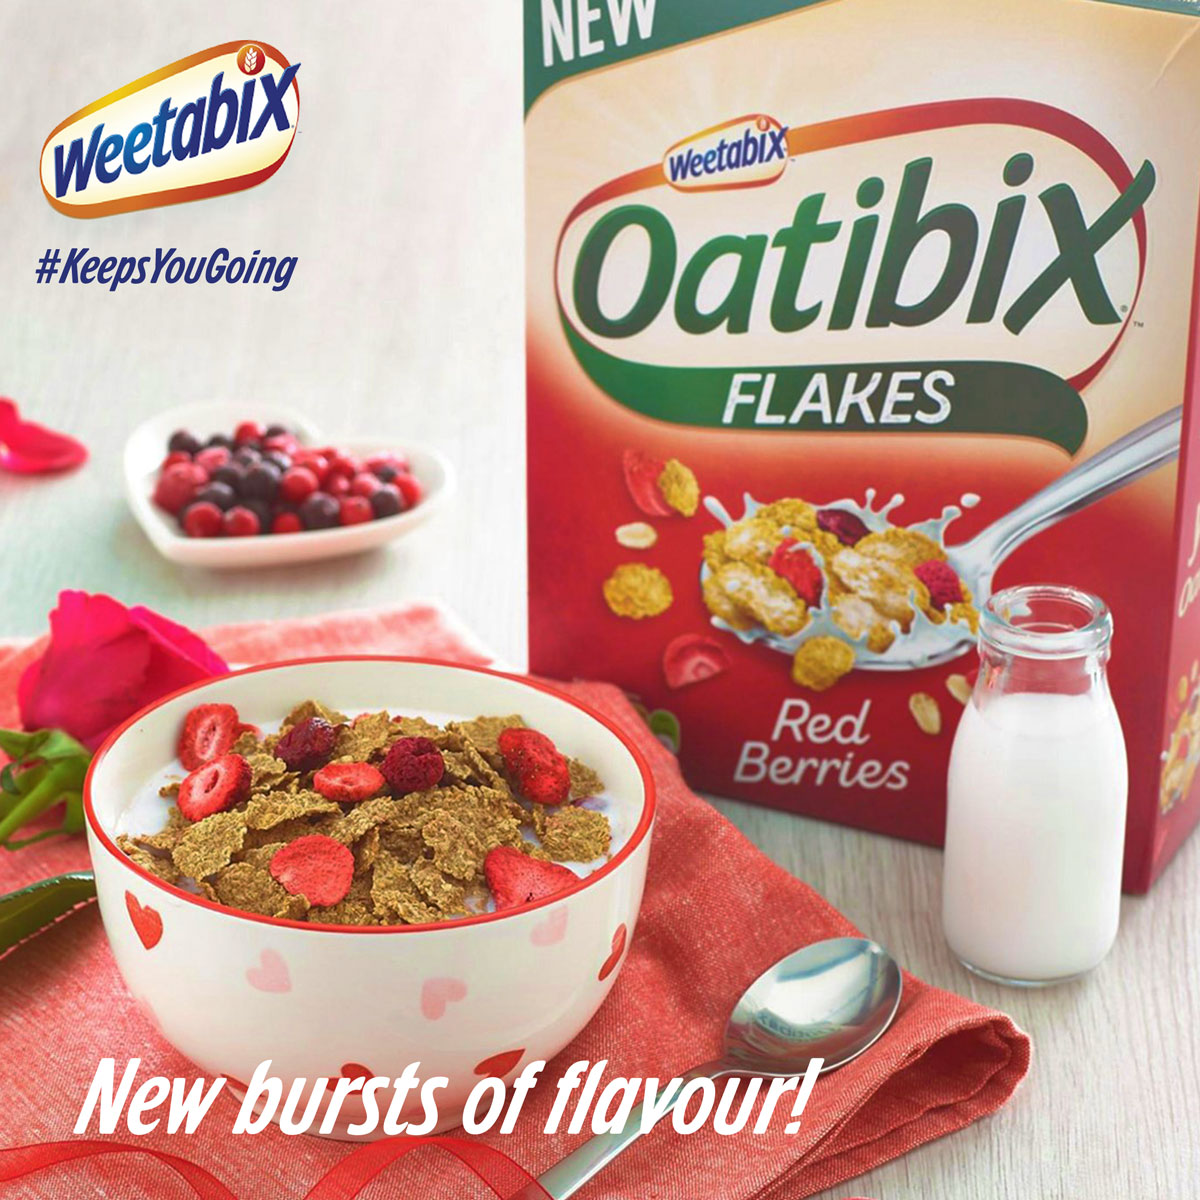 Do healthy the fun way! Introducing the new Oatibix Flakes Redberries; the sweet, zingy taste of raspberries, strawberries, and cherries will definitely have you craving for more! #KeepGoing https://t.co/1JqlyzI9bf